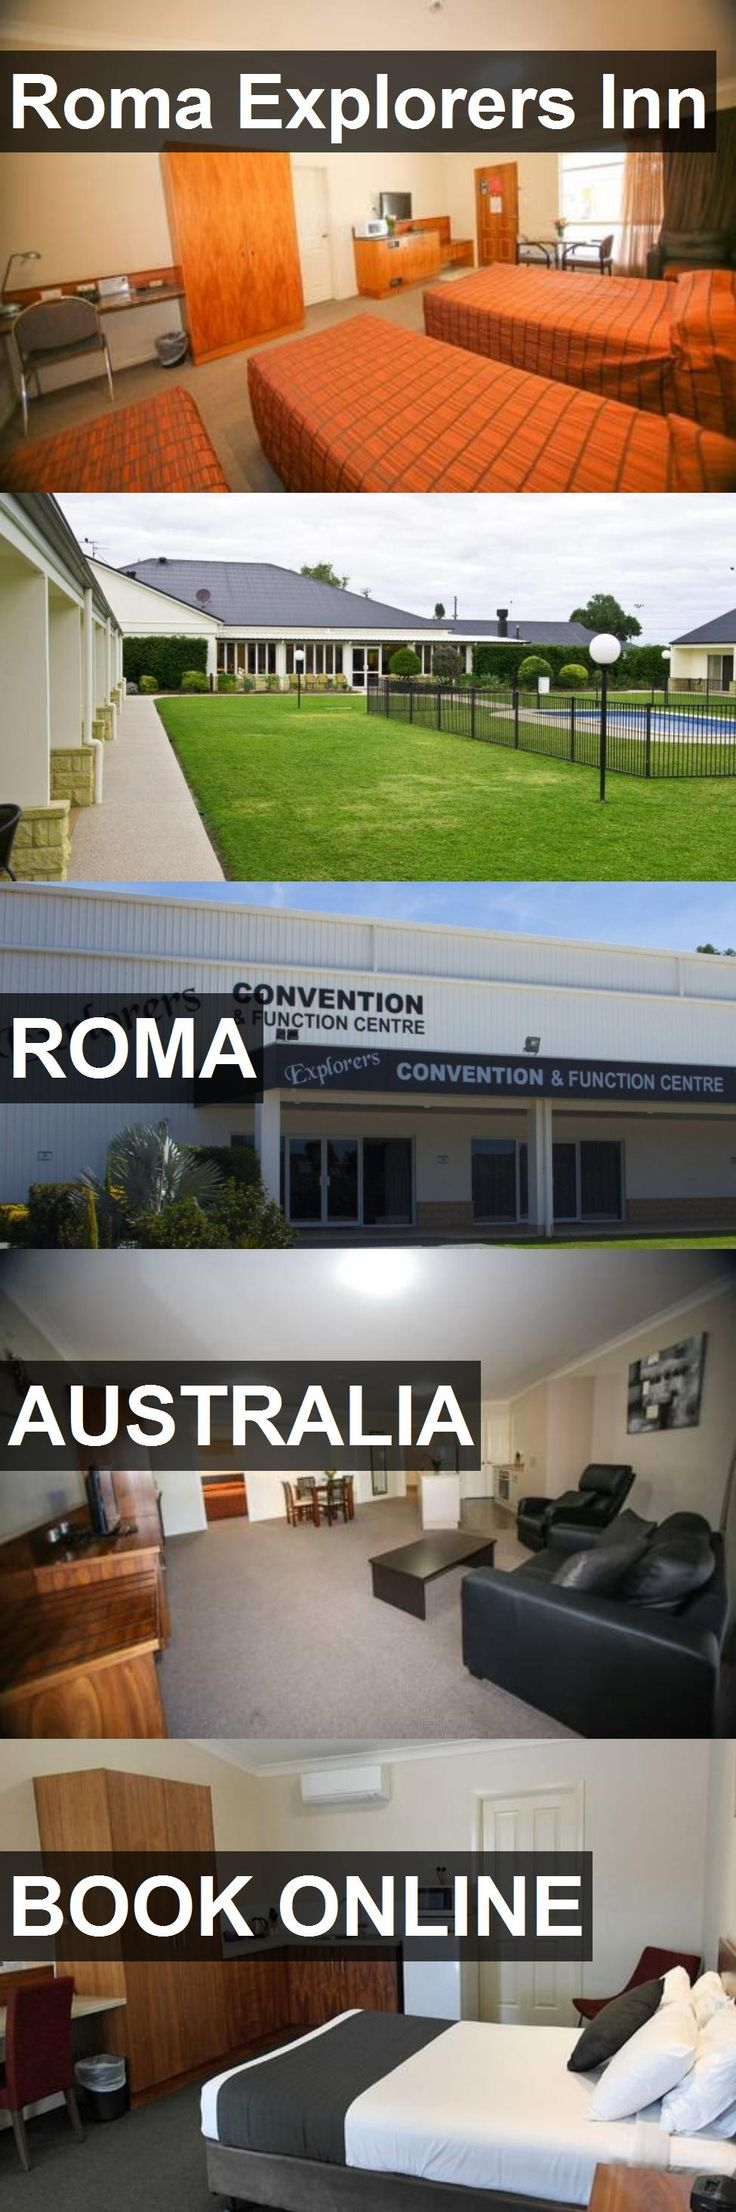 Hotel Roma Explorers Inn in Roma, Australia. For more information, photos, reviews and best prices please follow the link. #Australia #Roma #travel #vacation #hotel